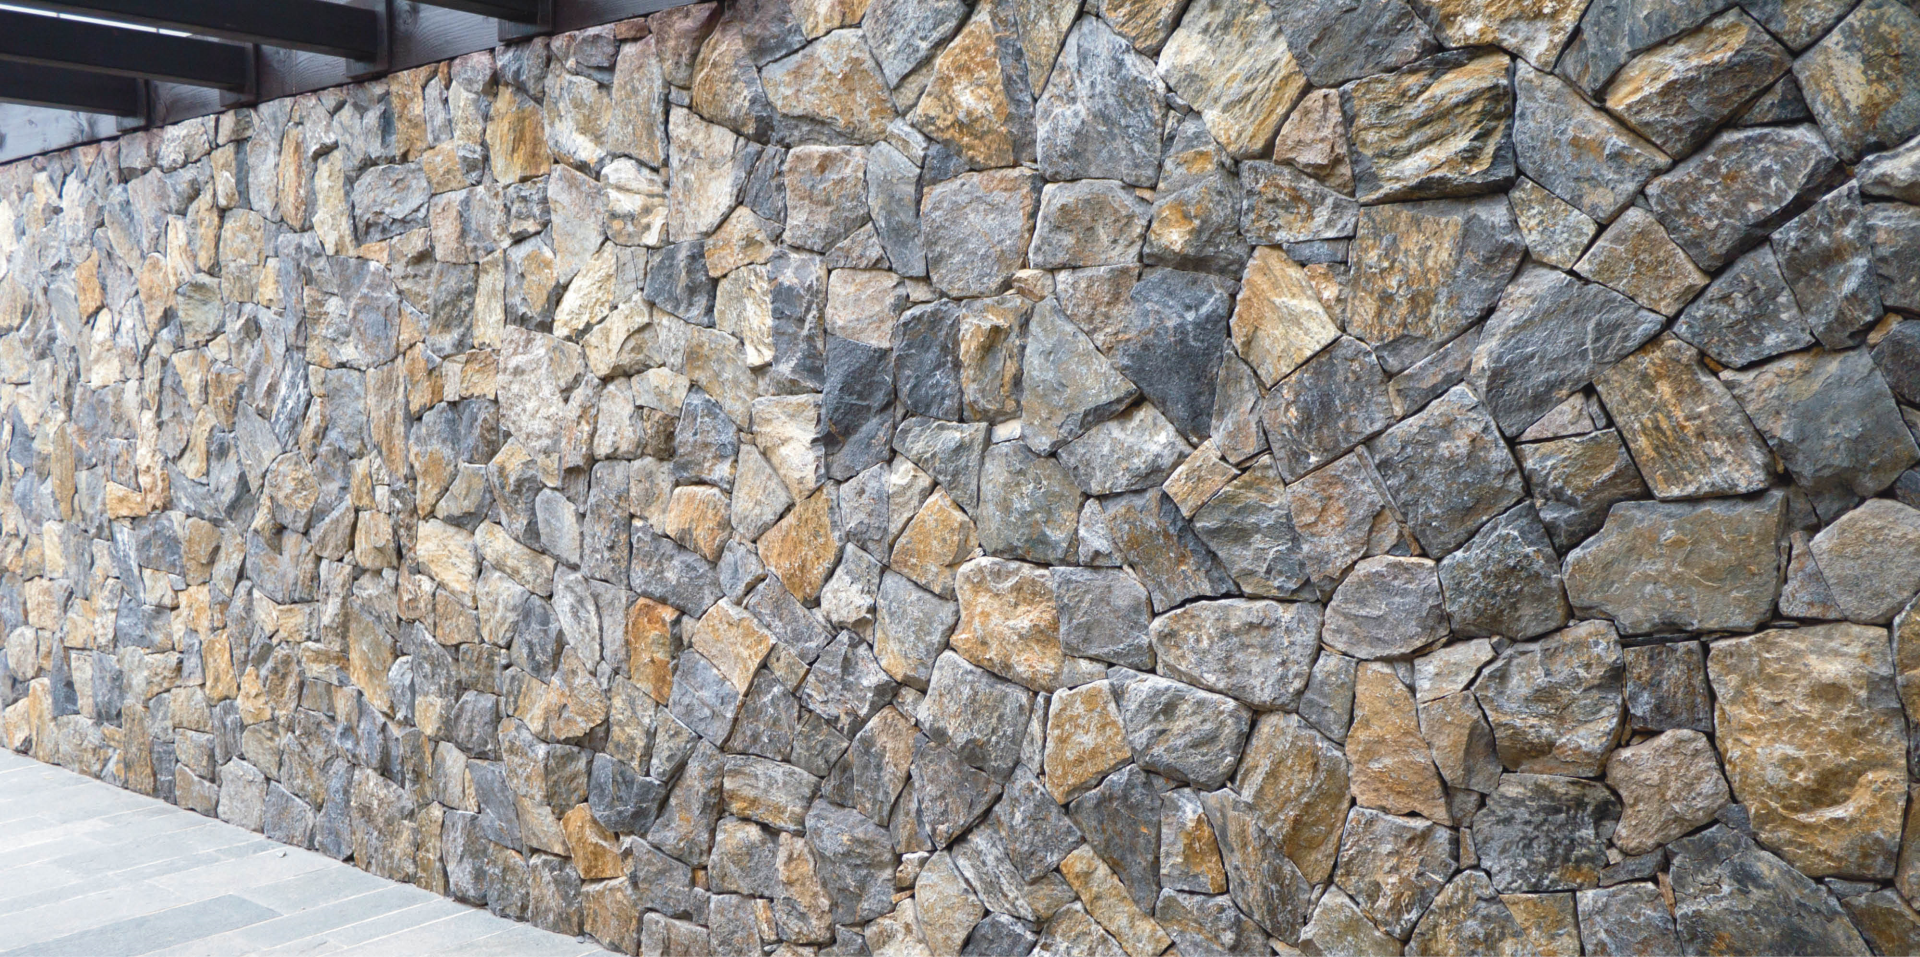 Tundra Rock Face by ErthCoverings